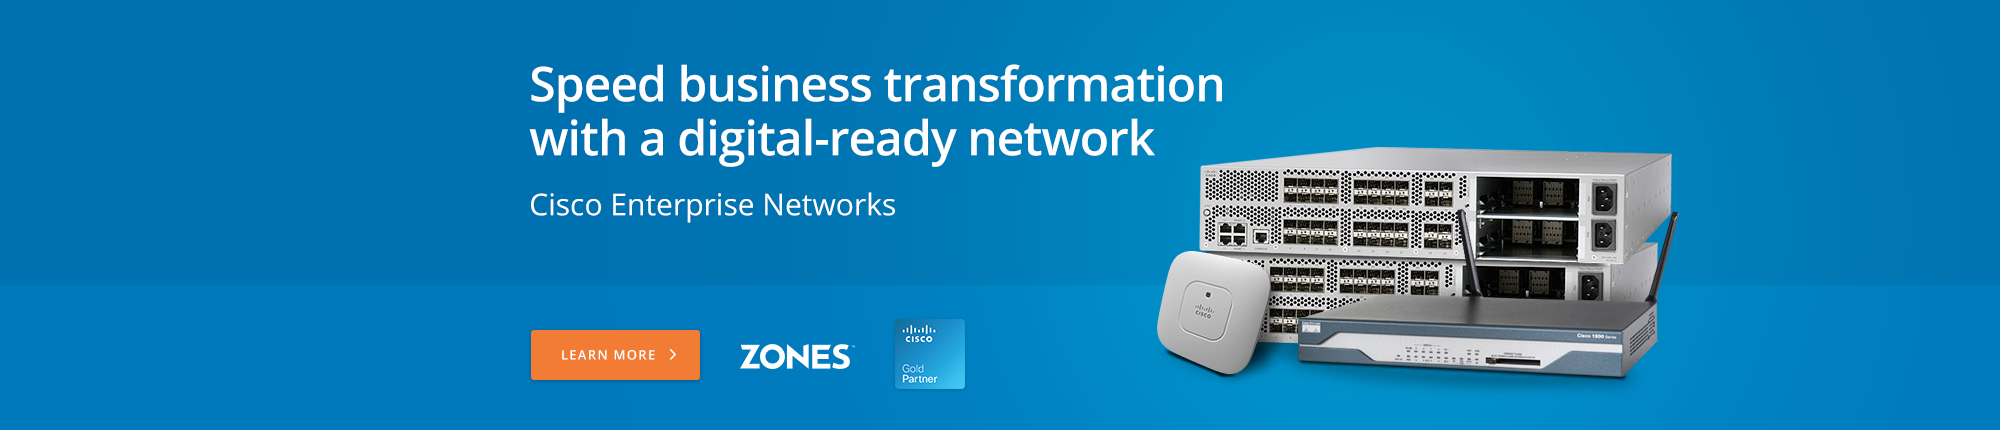 Speed business transformation with a digital-ready network